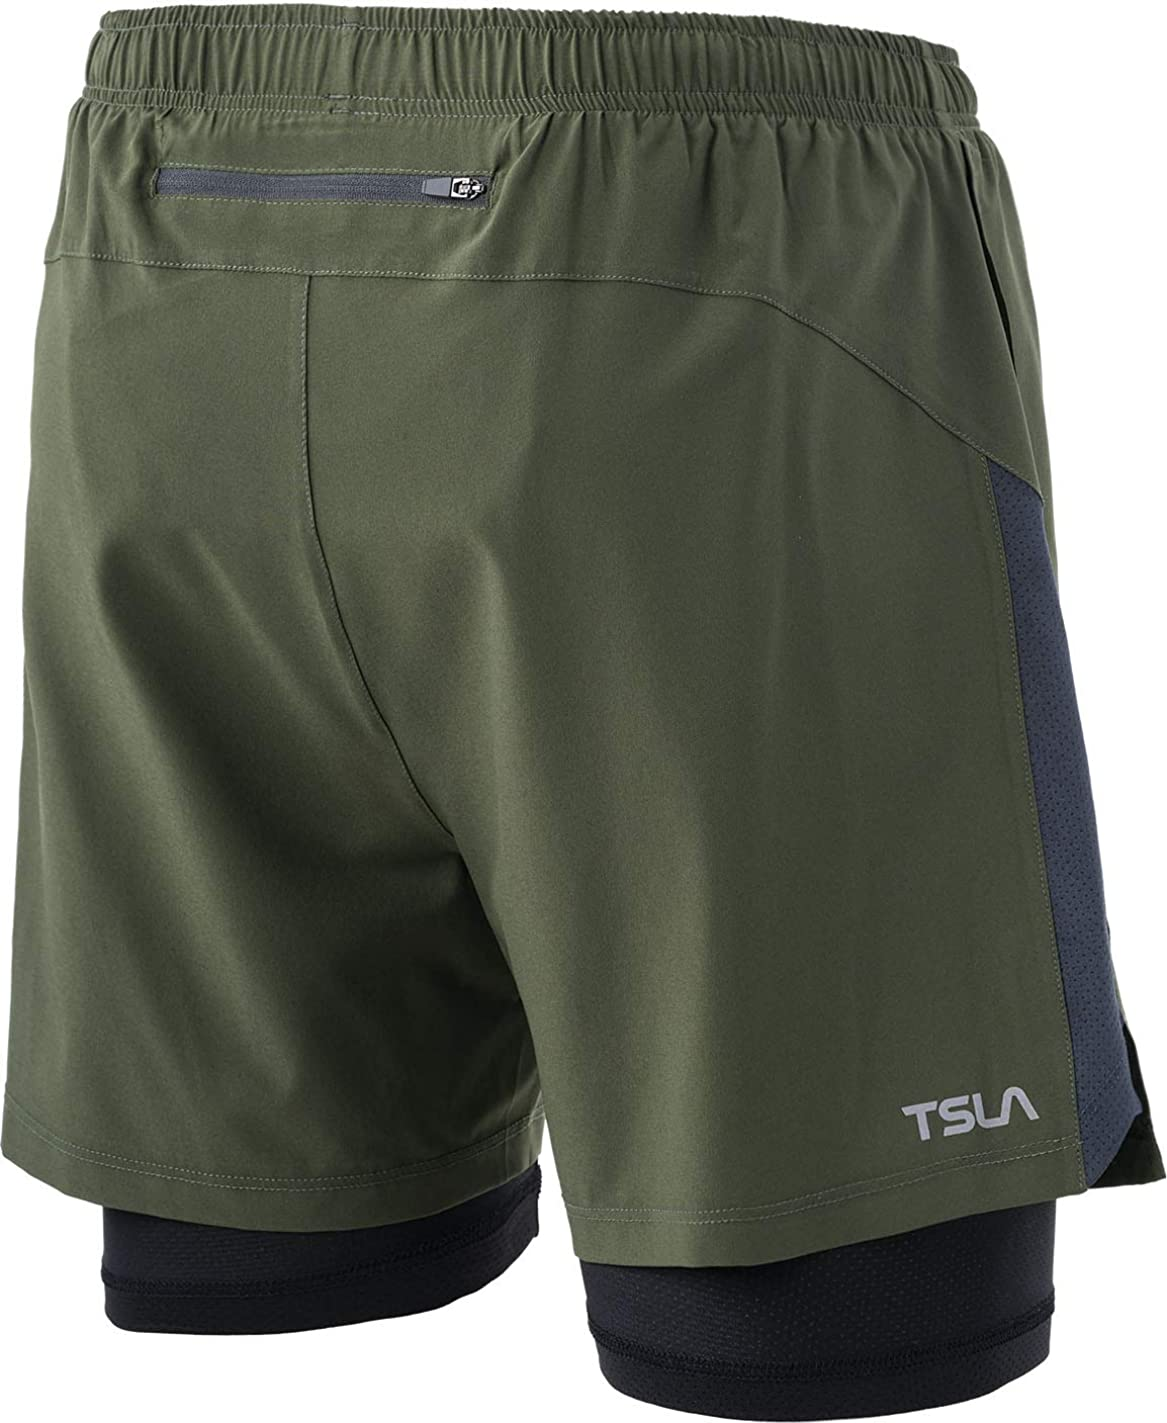 TSLA Mens 2 in 1 Active Running Shorts Quick Dry Exercise Workout Shorts Gym Training Athletic Shorts with Pockets